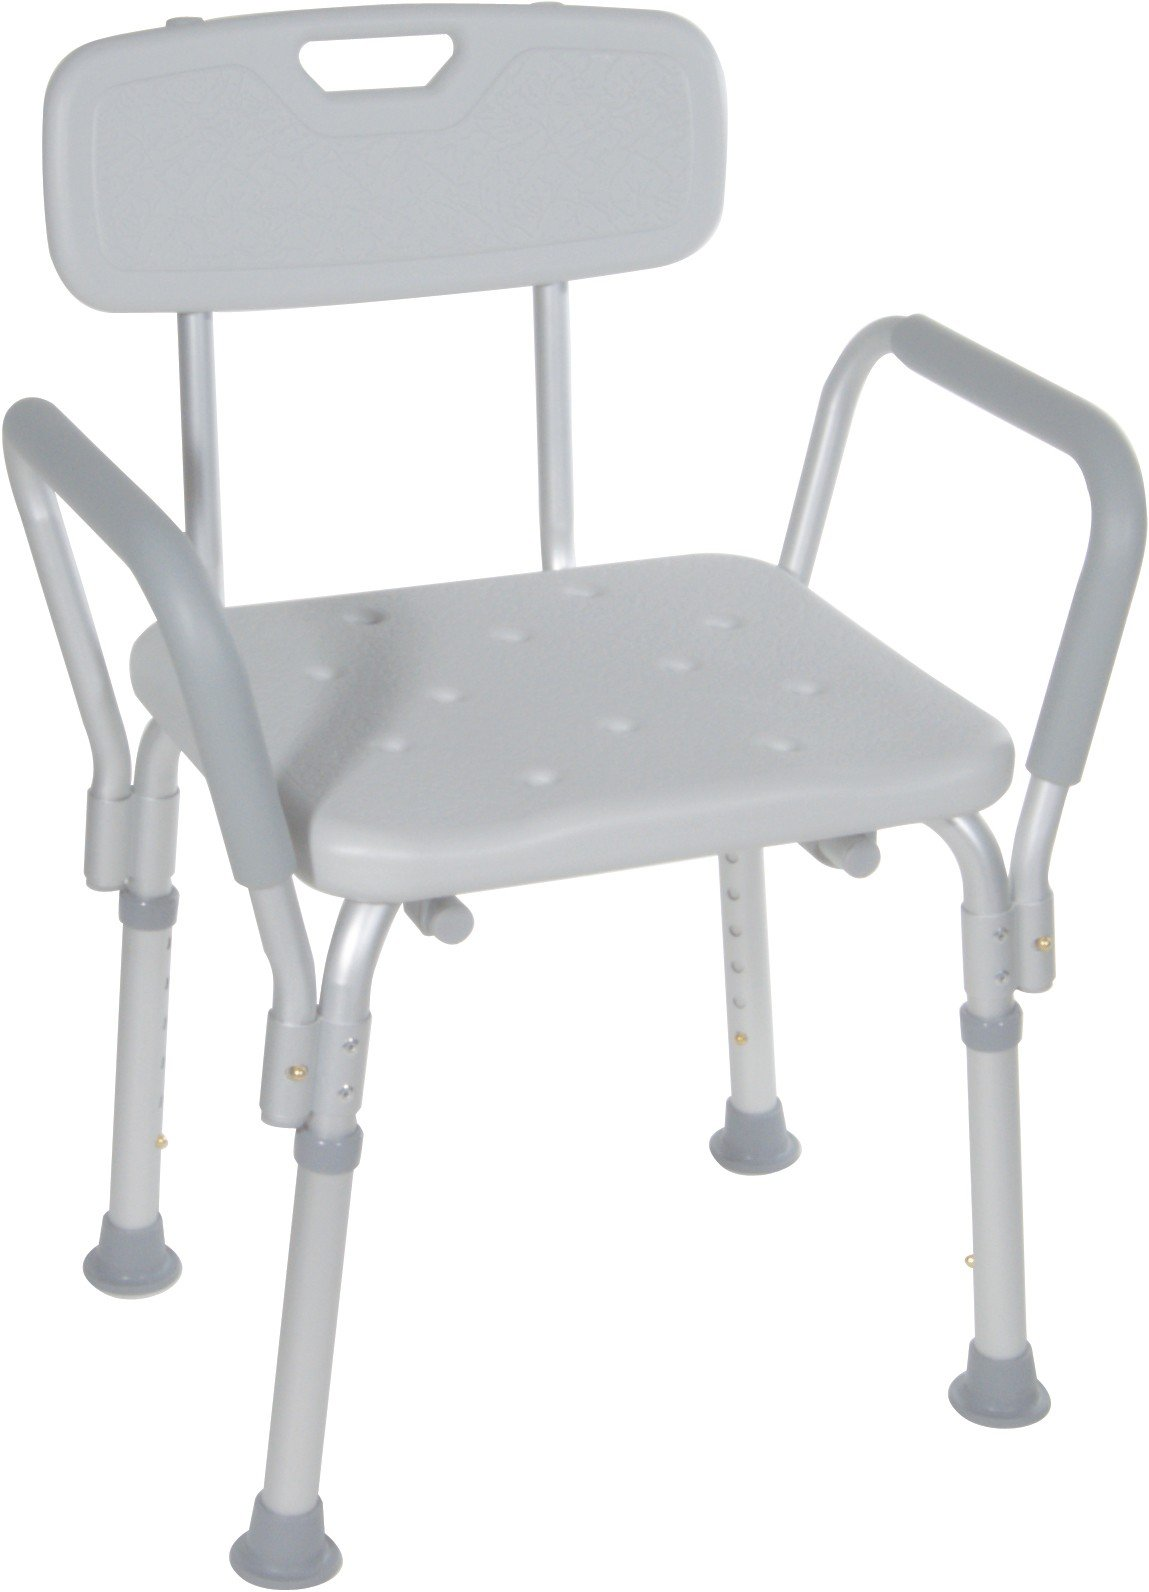 shower chair with back and arms silver office bath bench removable corner home medical